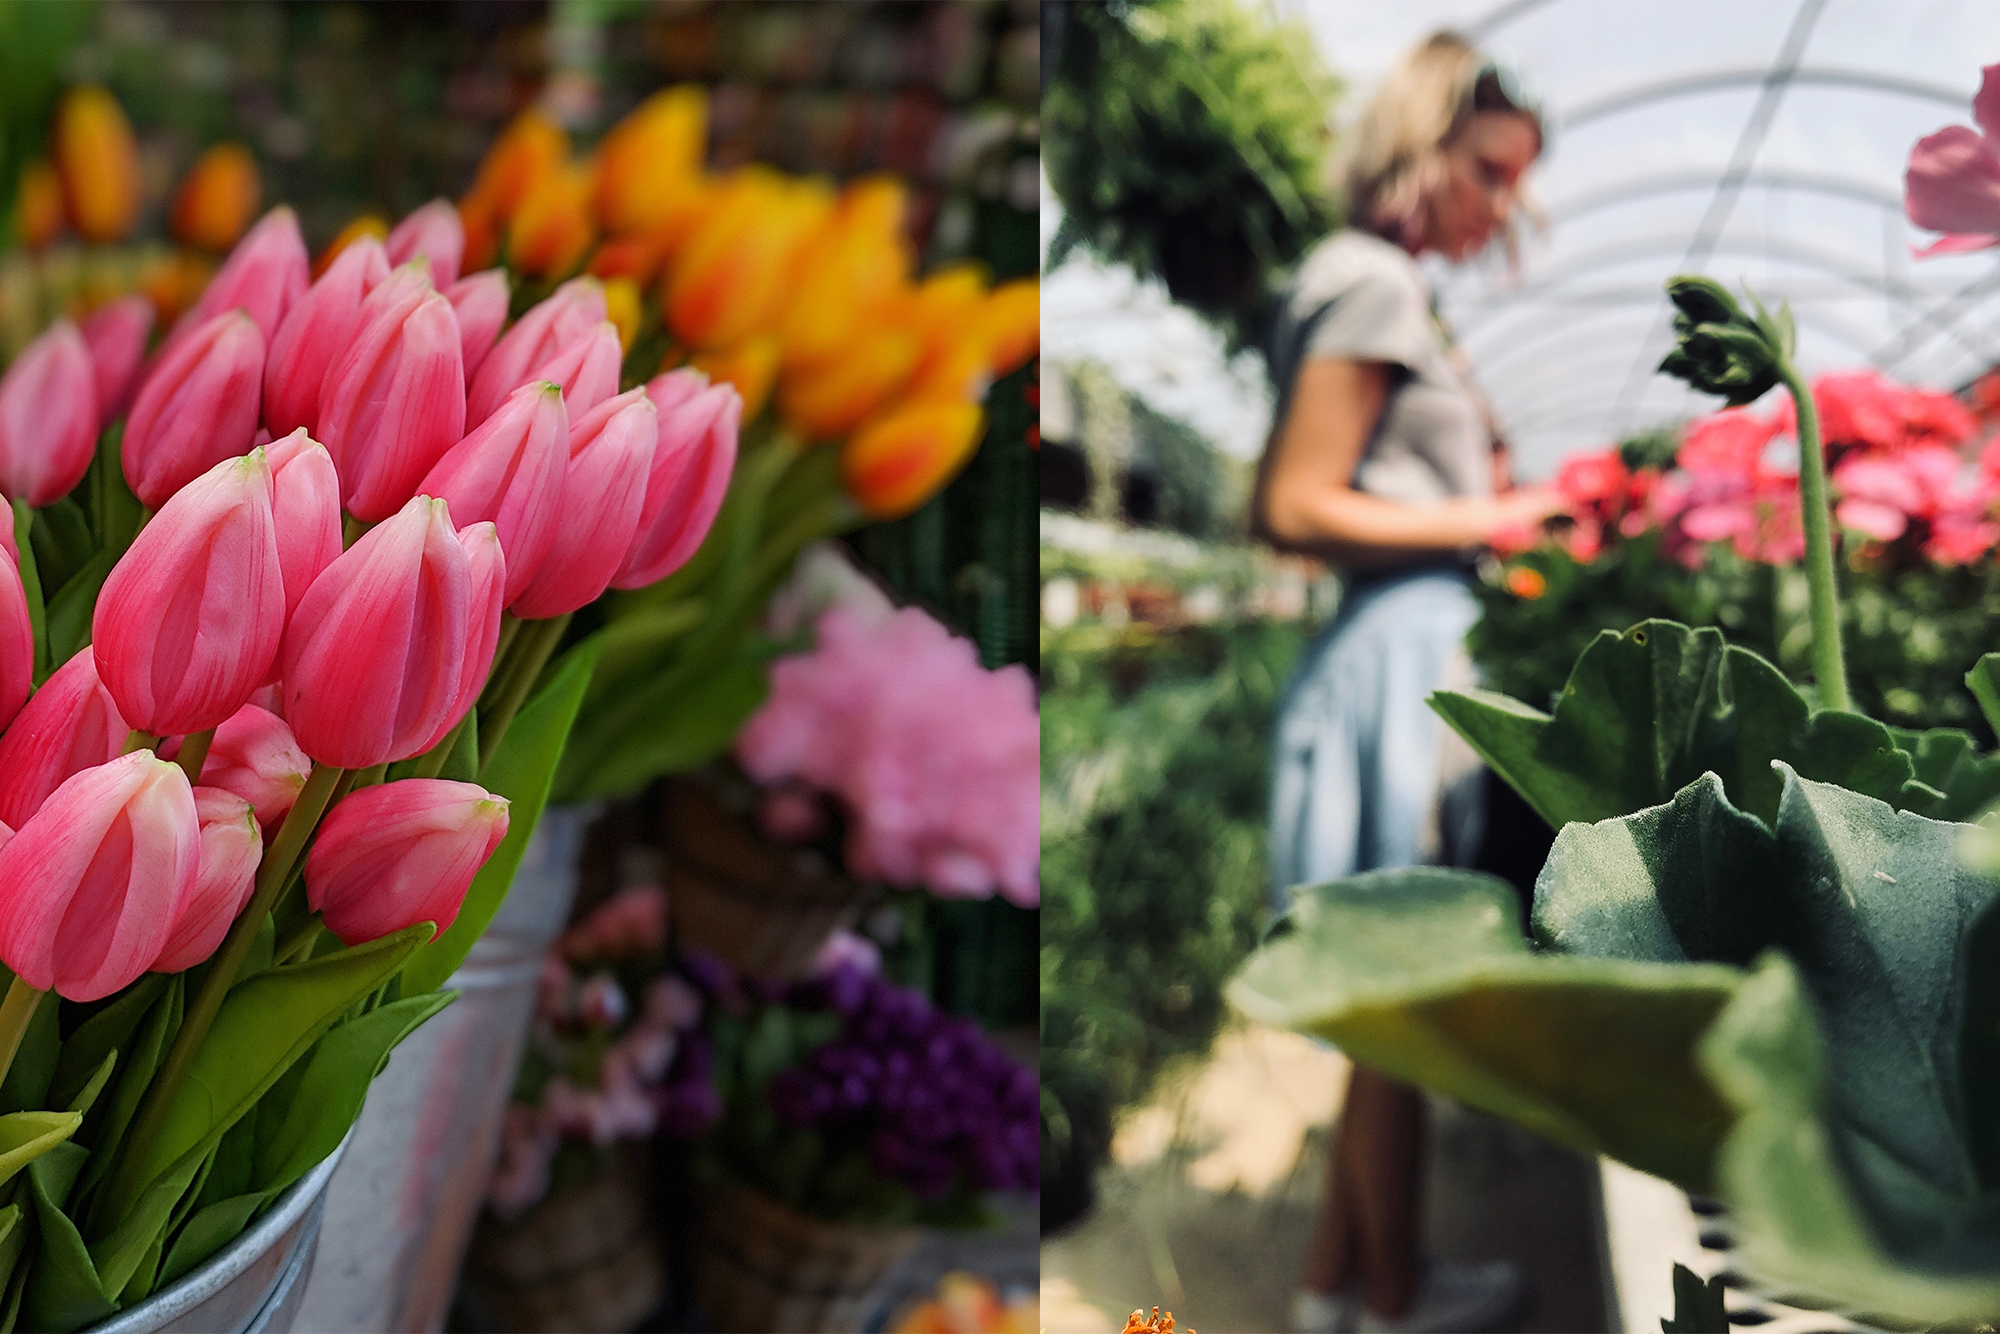 Collage of nursery and flowers